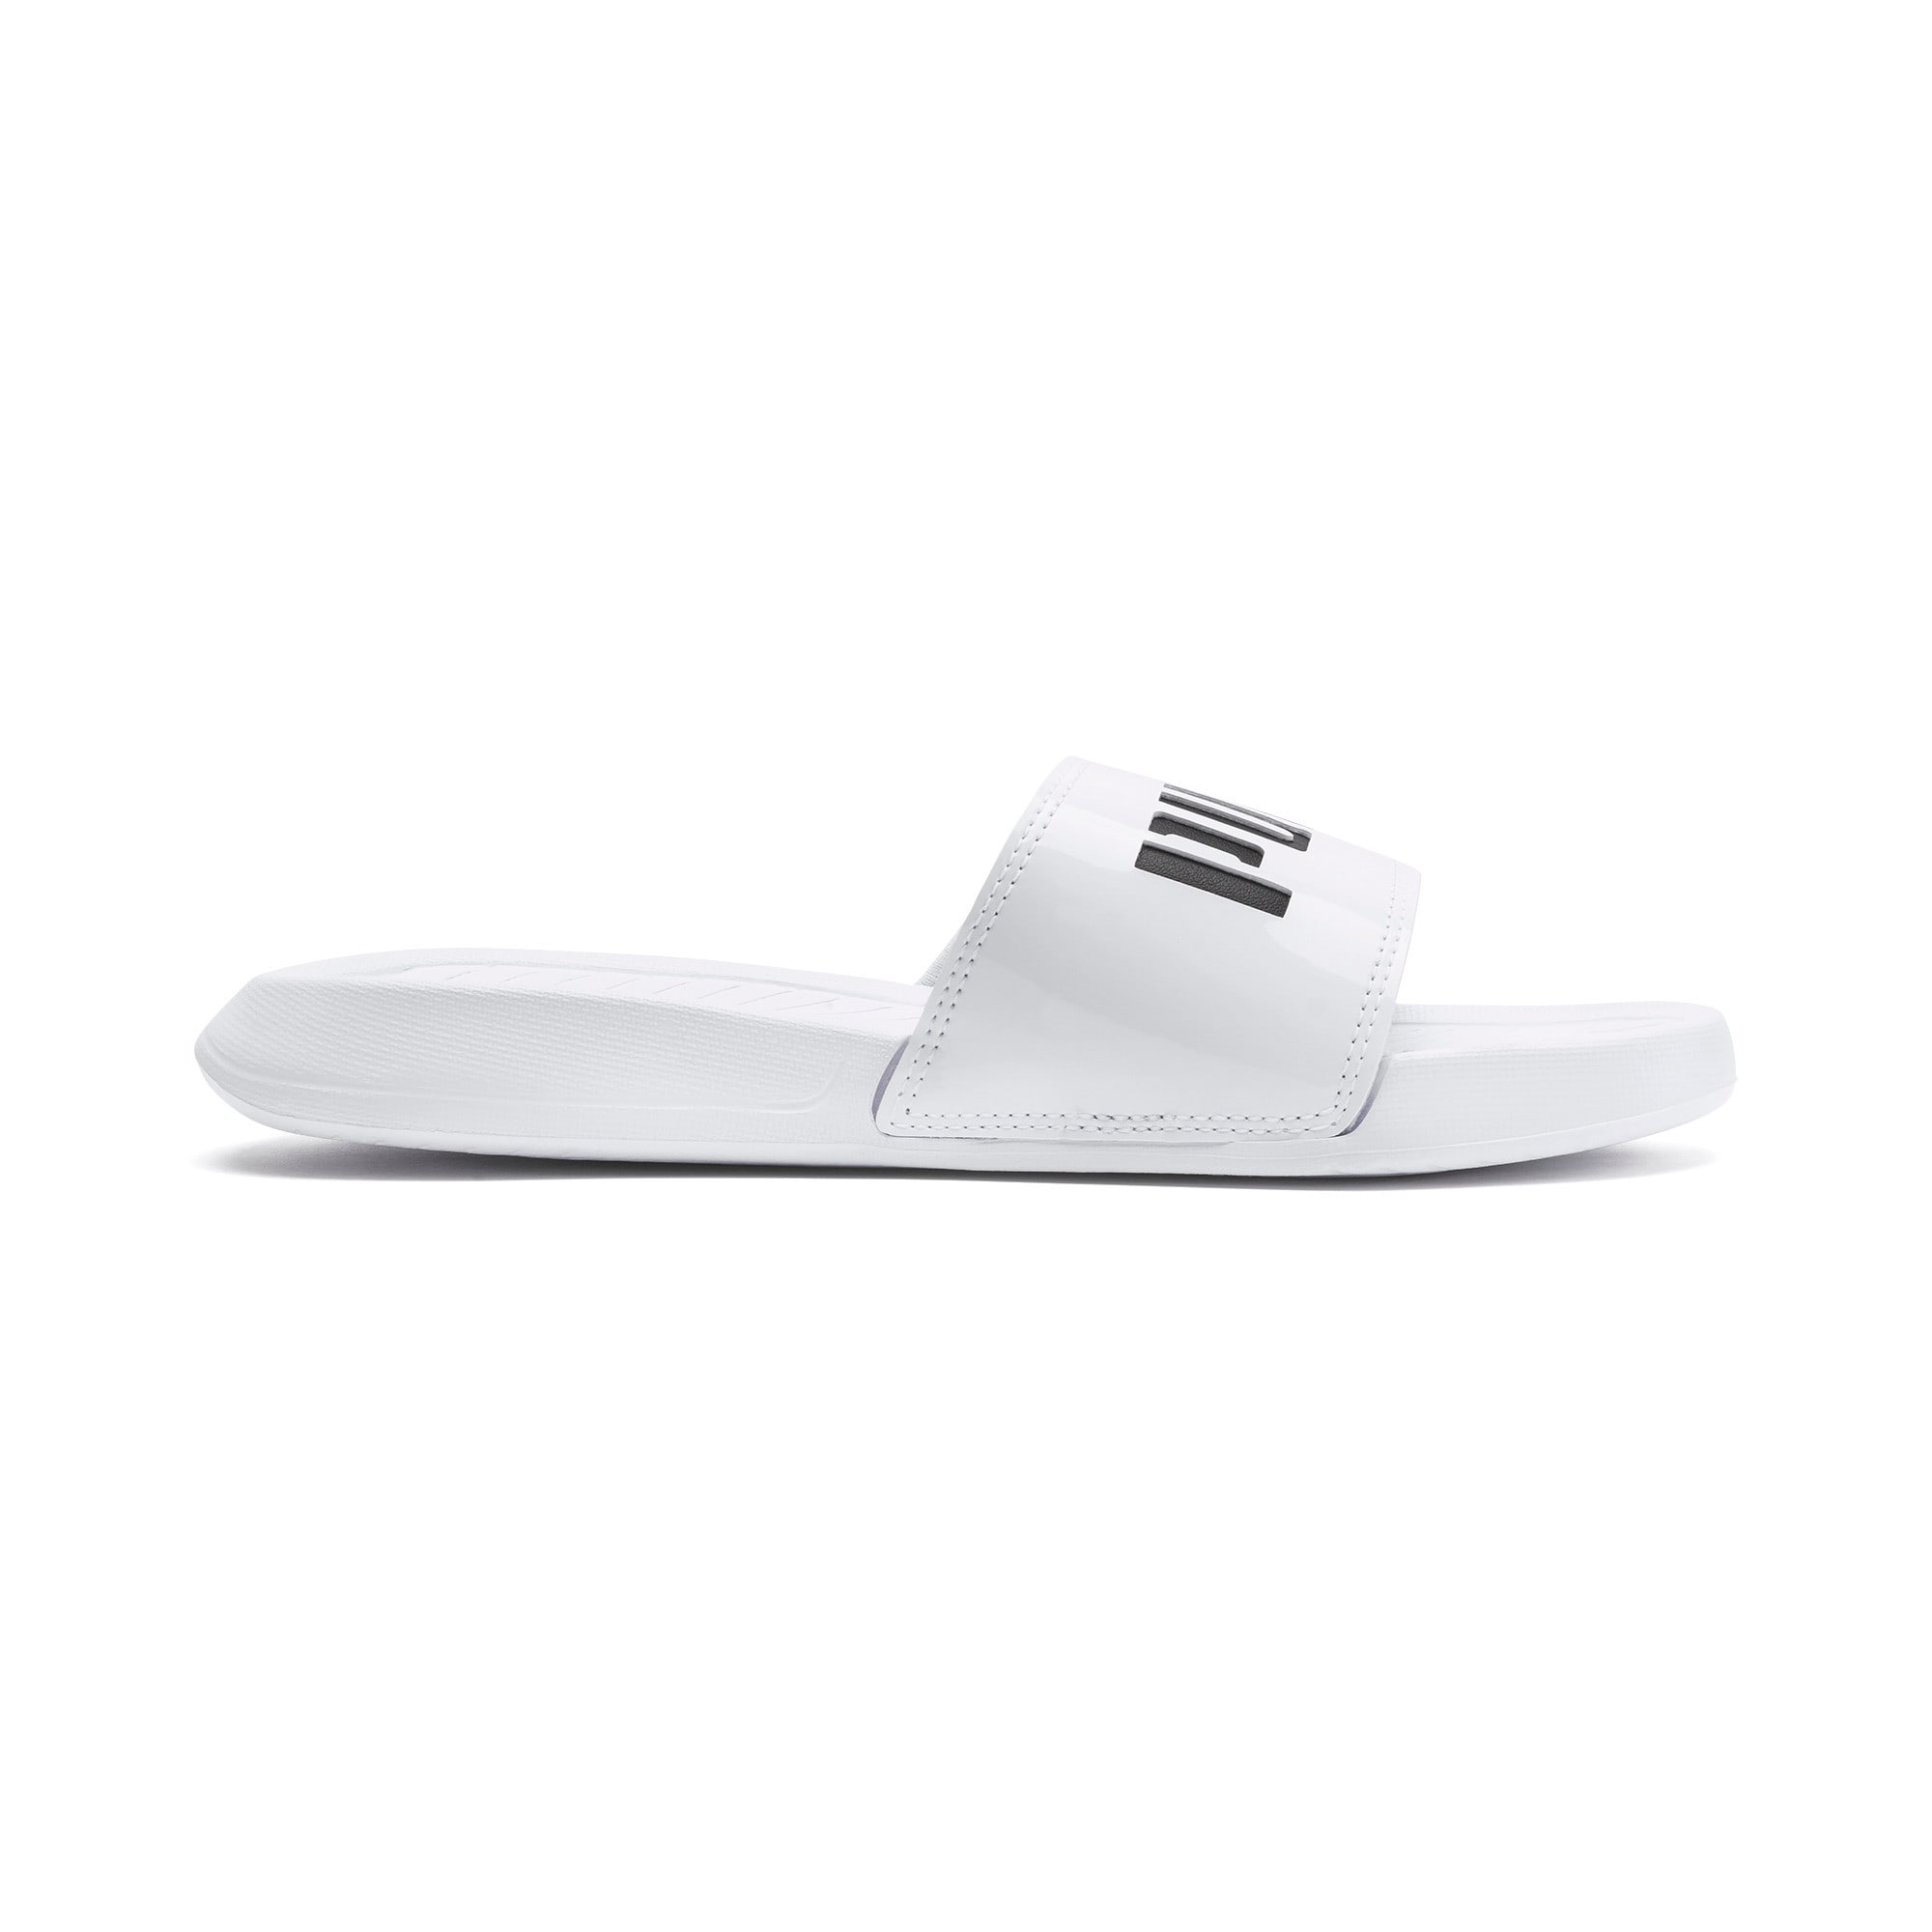 Thumbnail 5 of Popcat Patent Women's Sandals, Puma White-Puma Black, medium